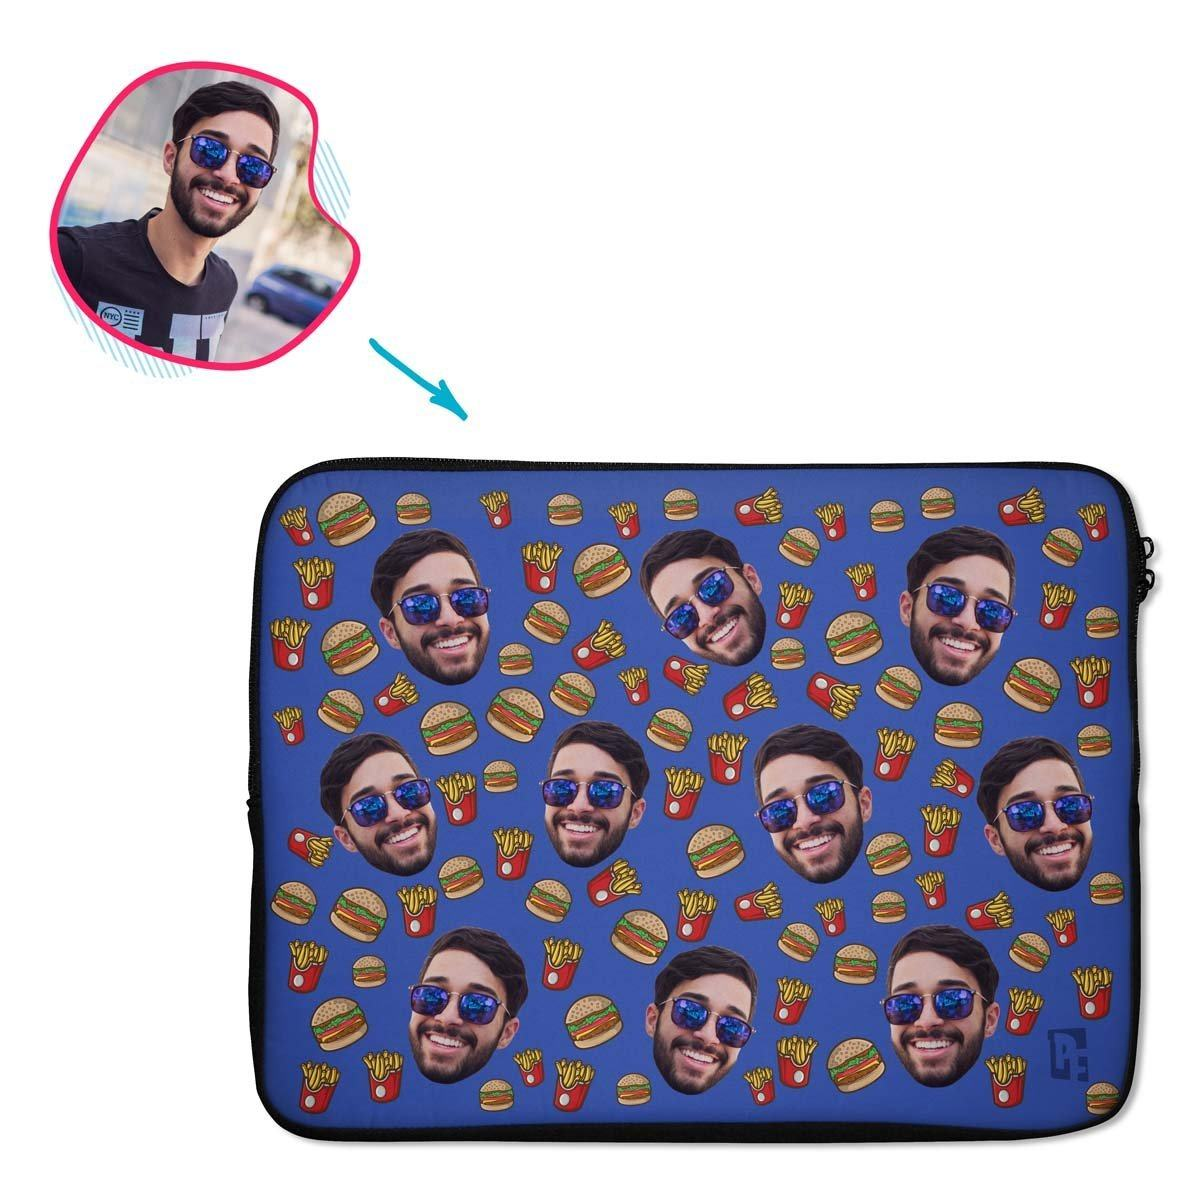 darkblue Fastfood laptop sleeve personalized with photo of face printed on them